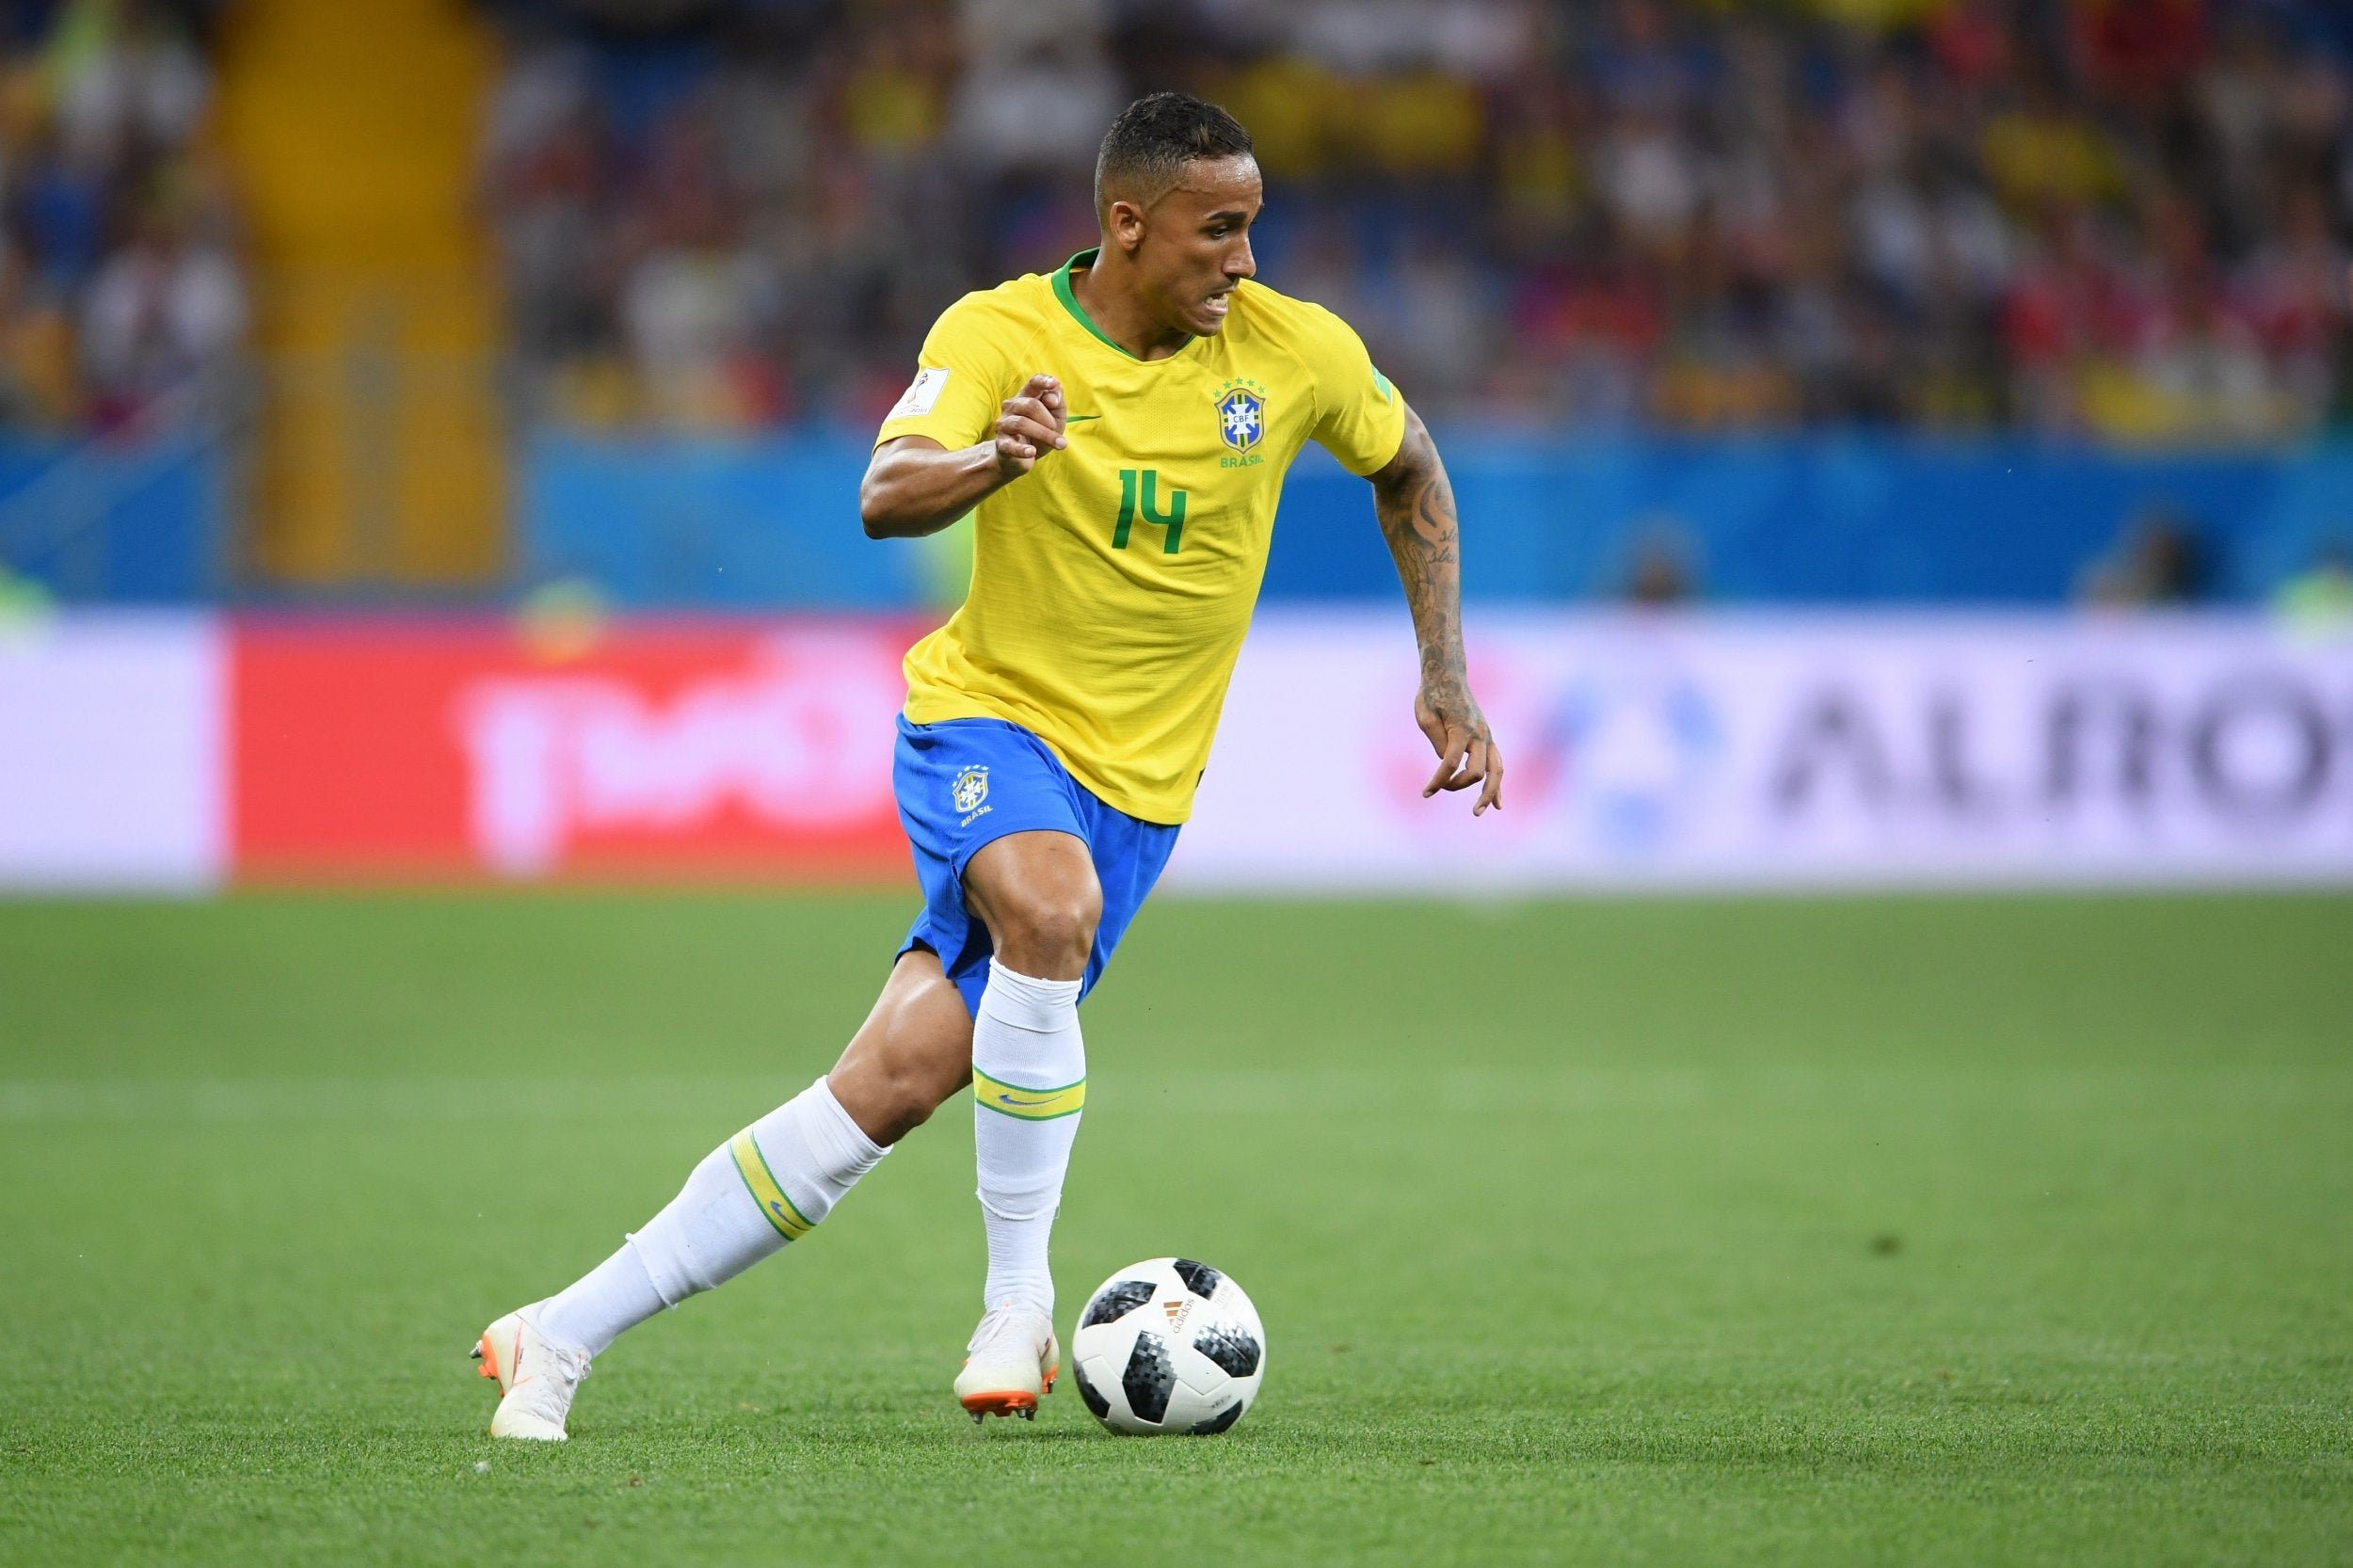 World Cup  Danilo Ruled Out With Injury For Brazils Group E Clash Against Costa Rica The Independent